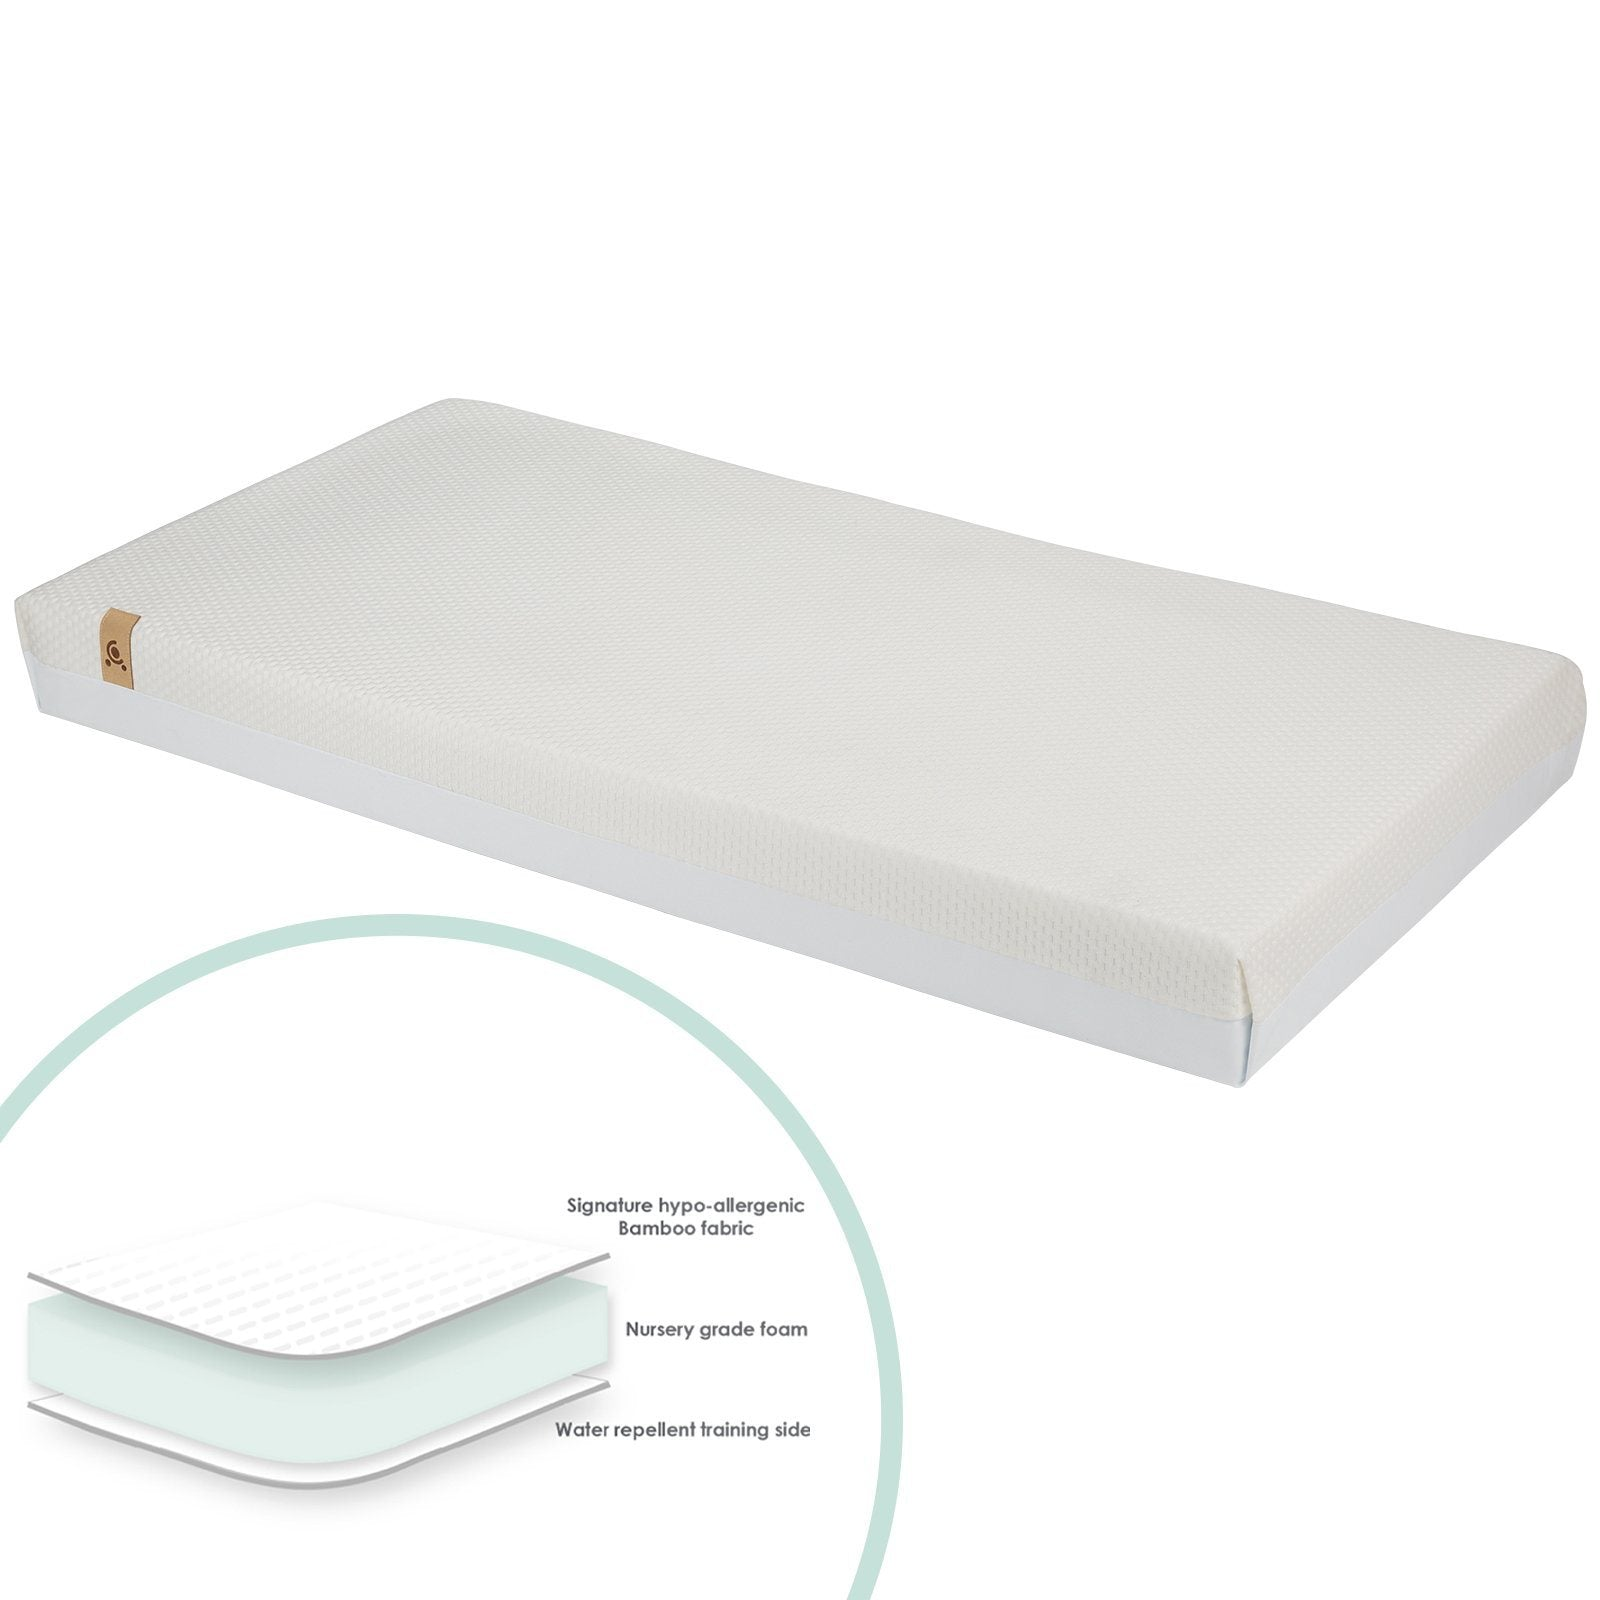 Lullaby Hypo-Allergenic Bamboo Foam Cot Mattress CuddleCo